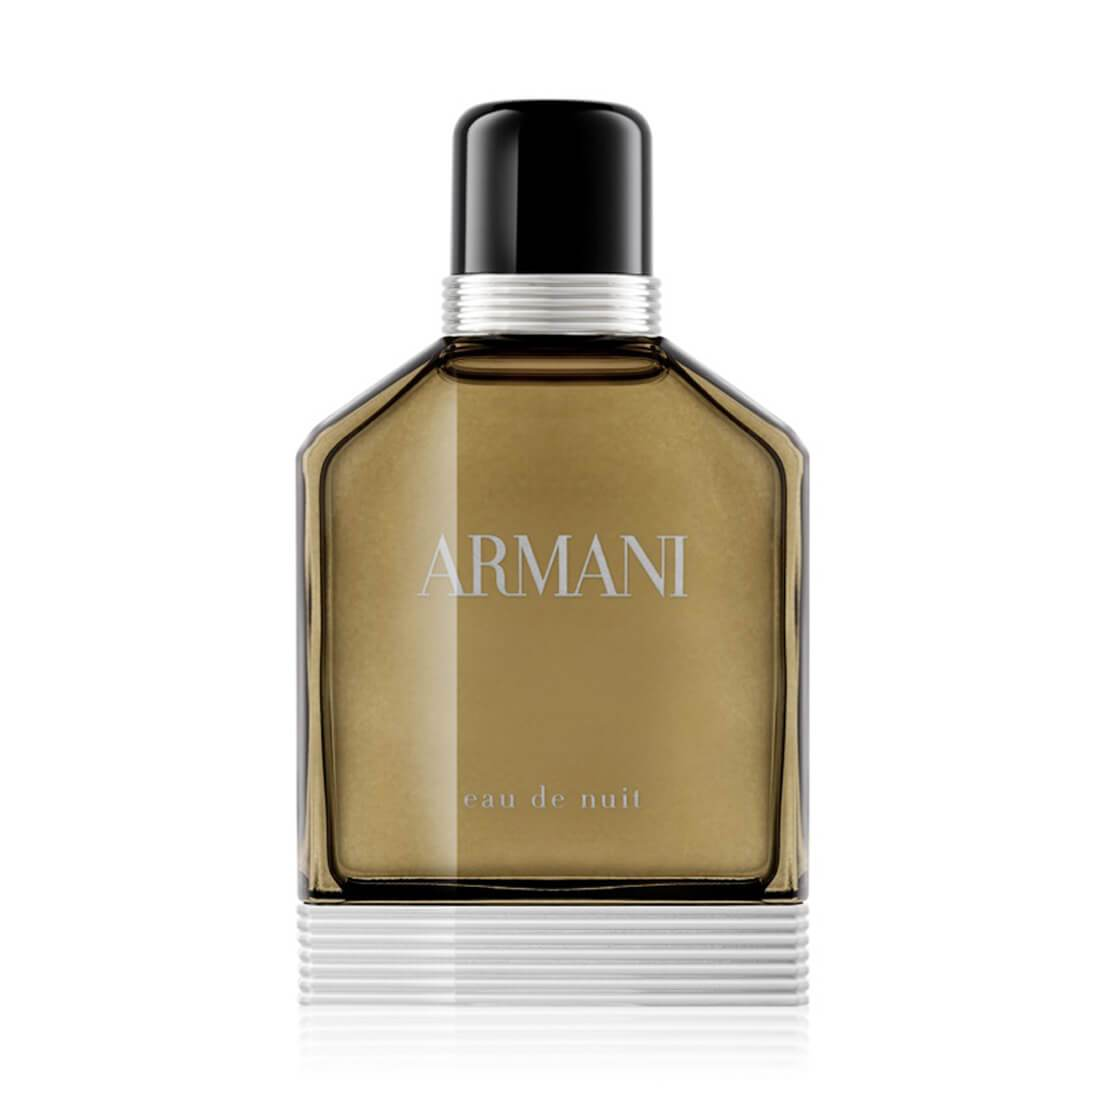 Giorgio Armani Eau De Nuit EDT Perfume For Men - 100ml